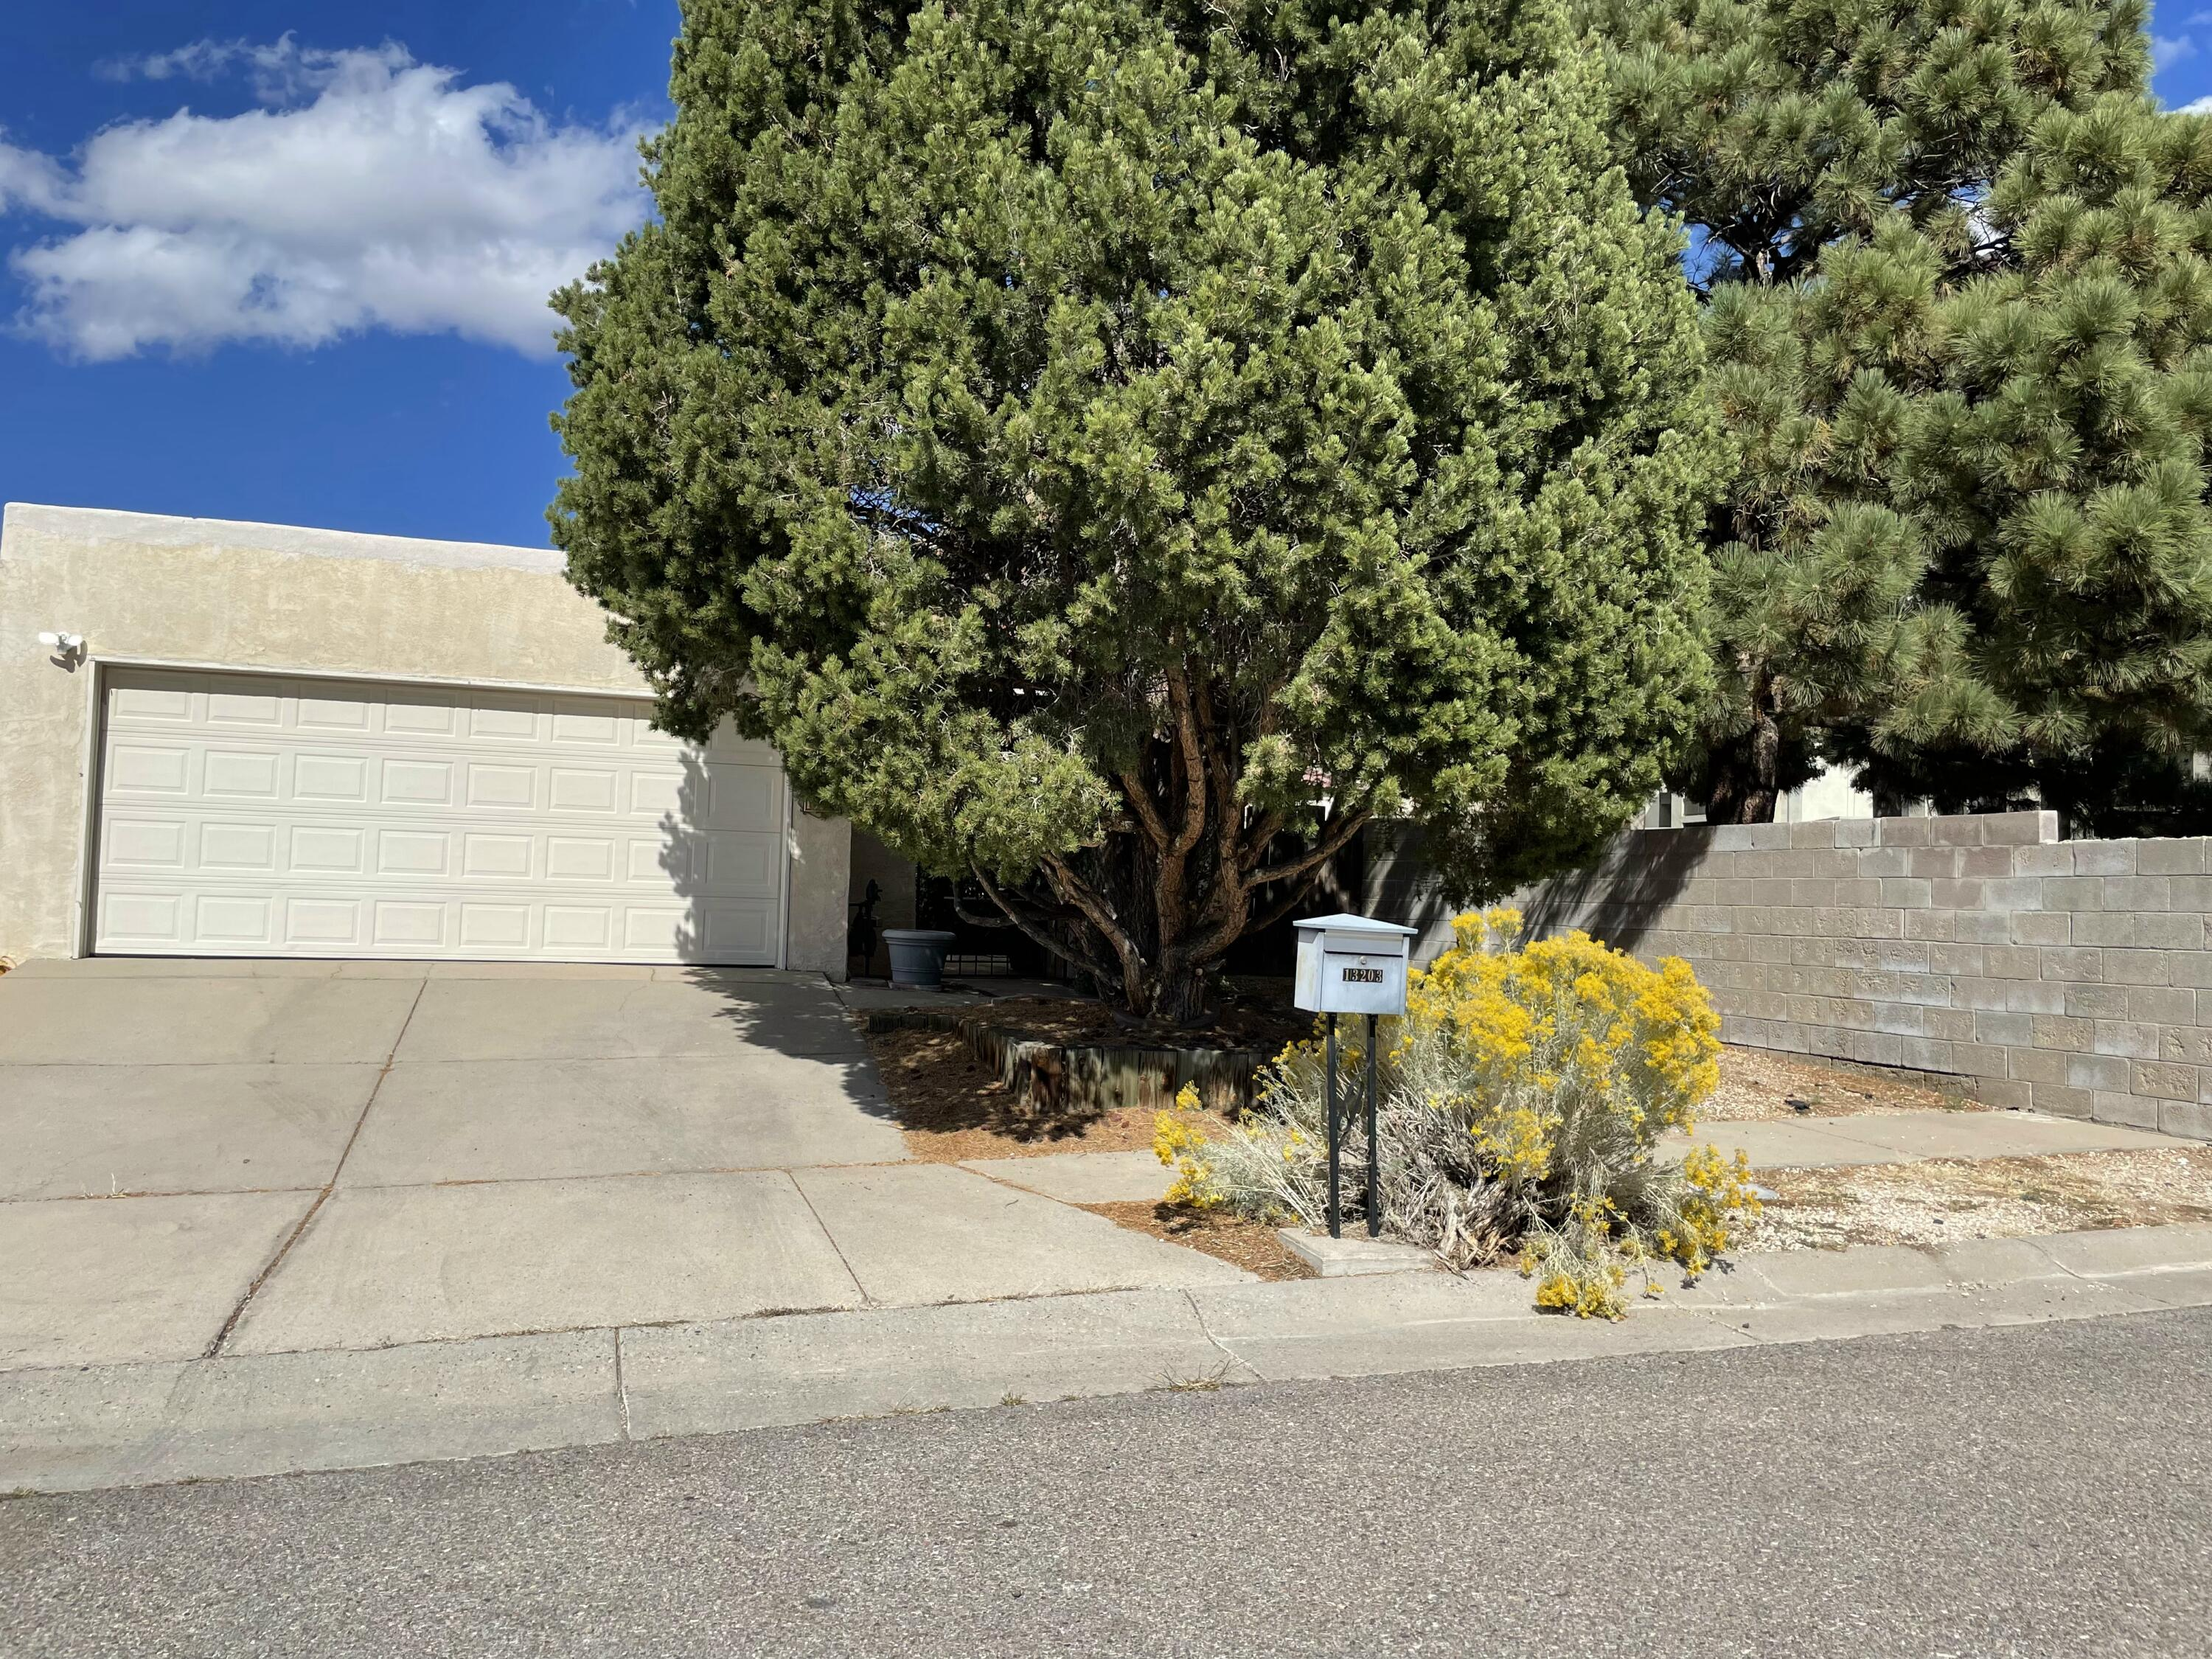 Well maintained townhouse conveniently located near Tramway and Lomas. It has a small gated courtyard entrance, open floor plan, and private backyard with extra space on the side yard! Updates include kitchen floor tile, carpet and laminate wood flooring-2015; new swamp cooler-2016; dishwasher, water heater, and garage exhaust fan-2018/19; and new roof-2018.